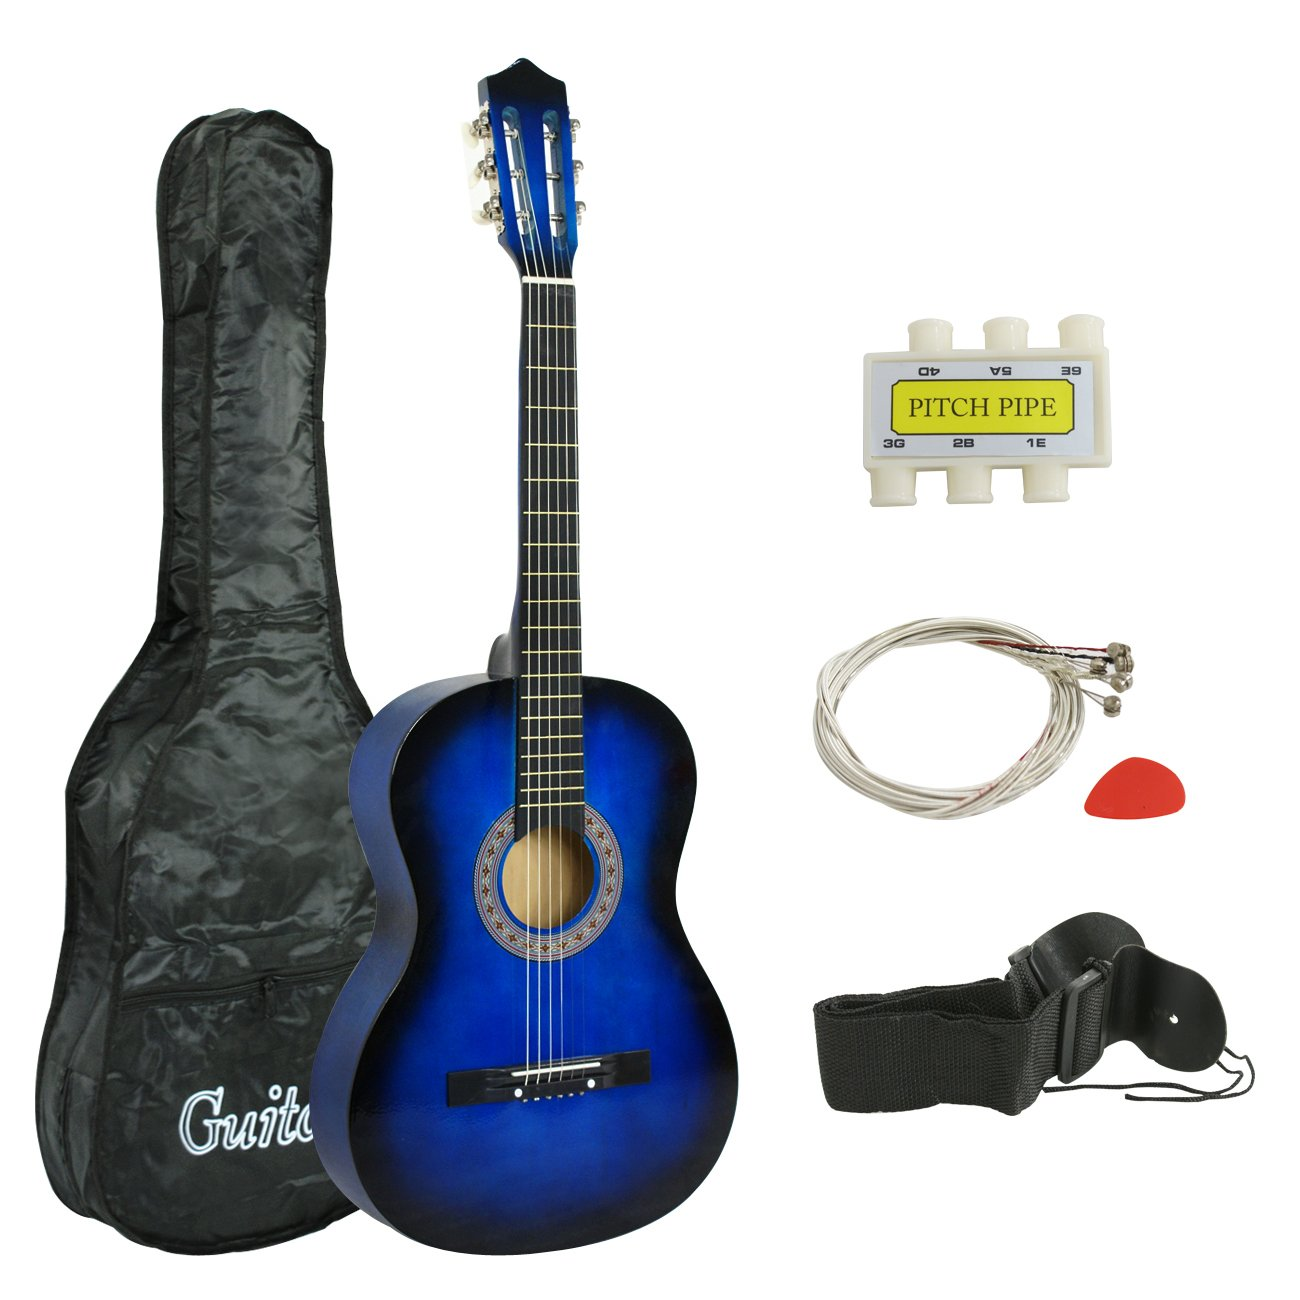 Smartxchoices Acoustic Guitar for Starter Beginner Music Lovers Kids Gift 38'' 6-String Folk Beginners Acoustic Guitar With Gig bag, Strap, Tuner and Pick (Blue) ... by Smartxchoices